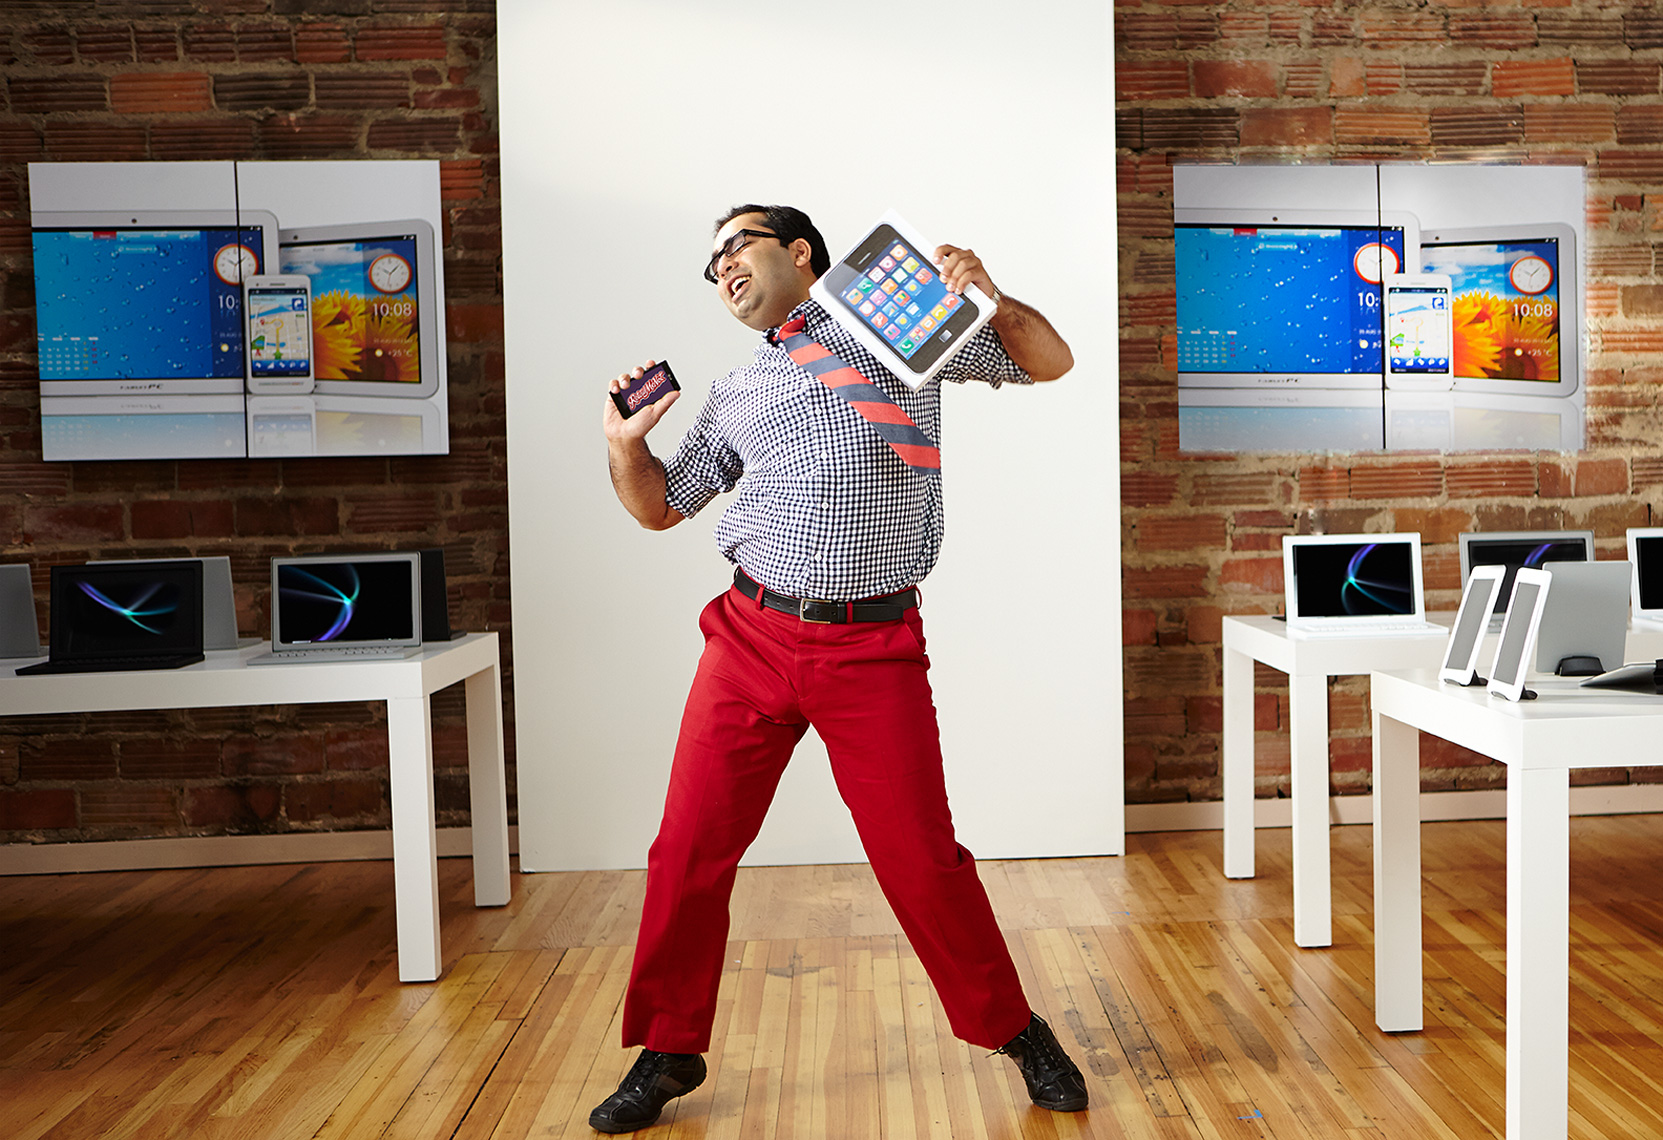 man dancing in a computer store with tablet